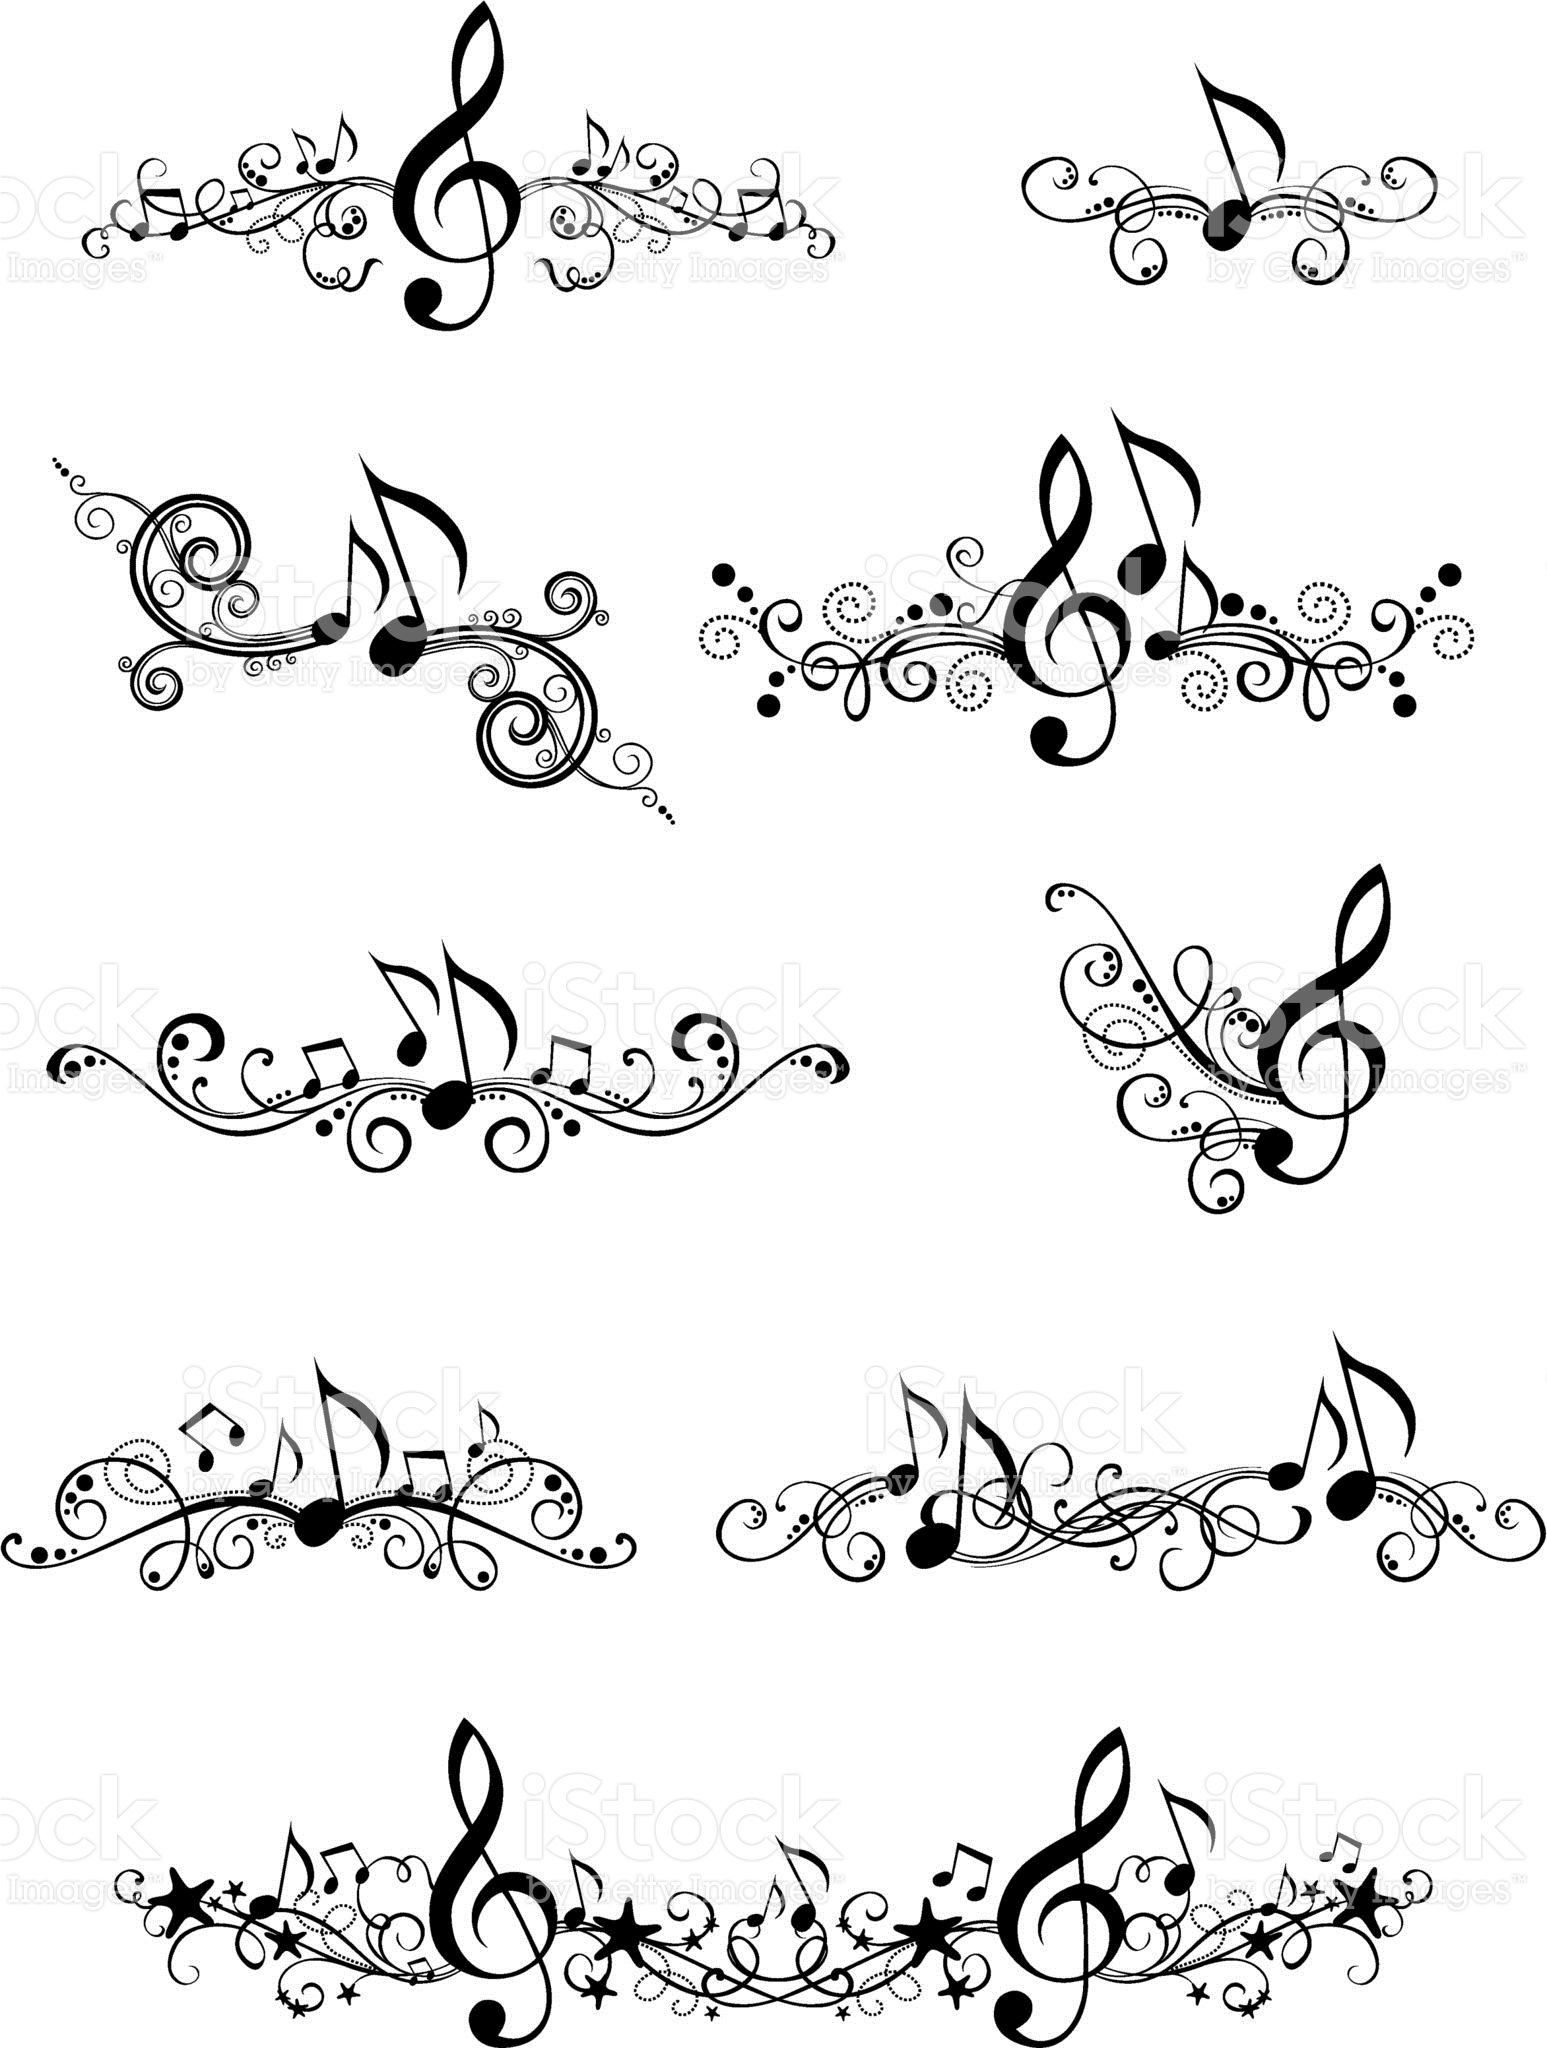 Ornate Music Elements And Page Decorations For Your Design